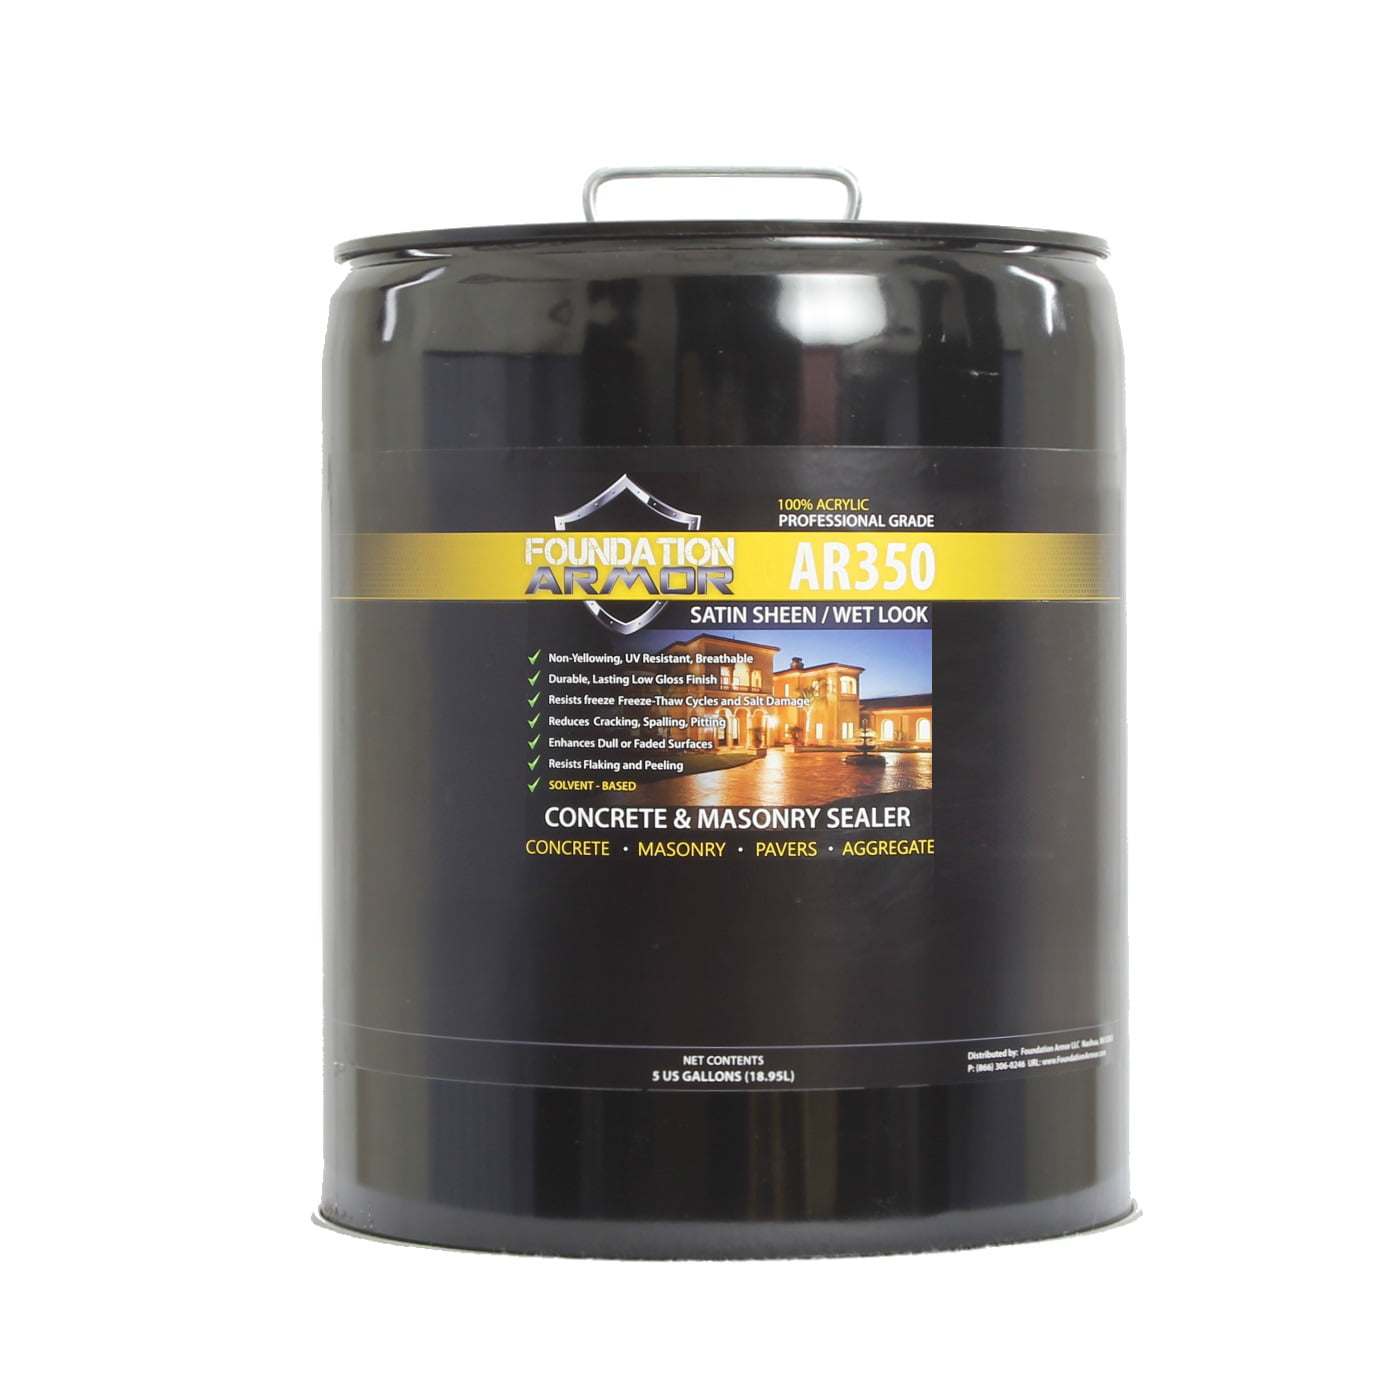 5 Gallon Armor AR350 Wet Look Concrete Sealer and Paver Sealer by Foundation Armor